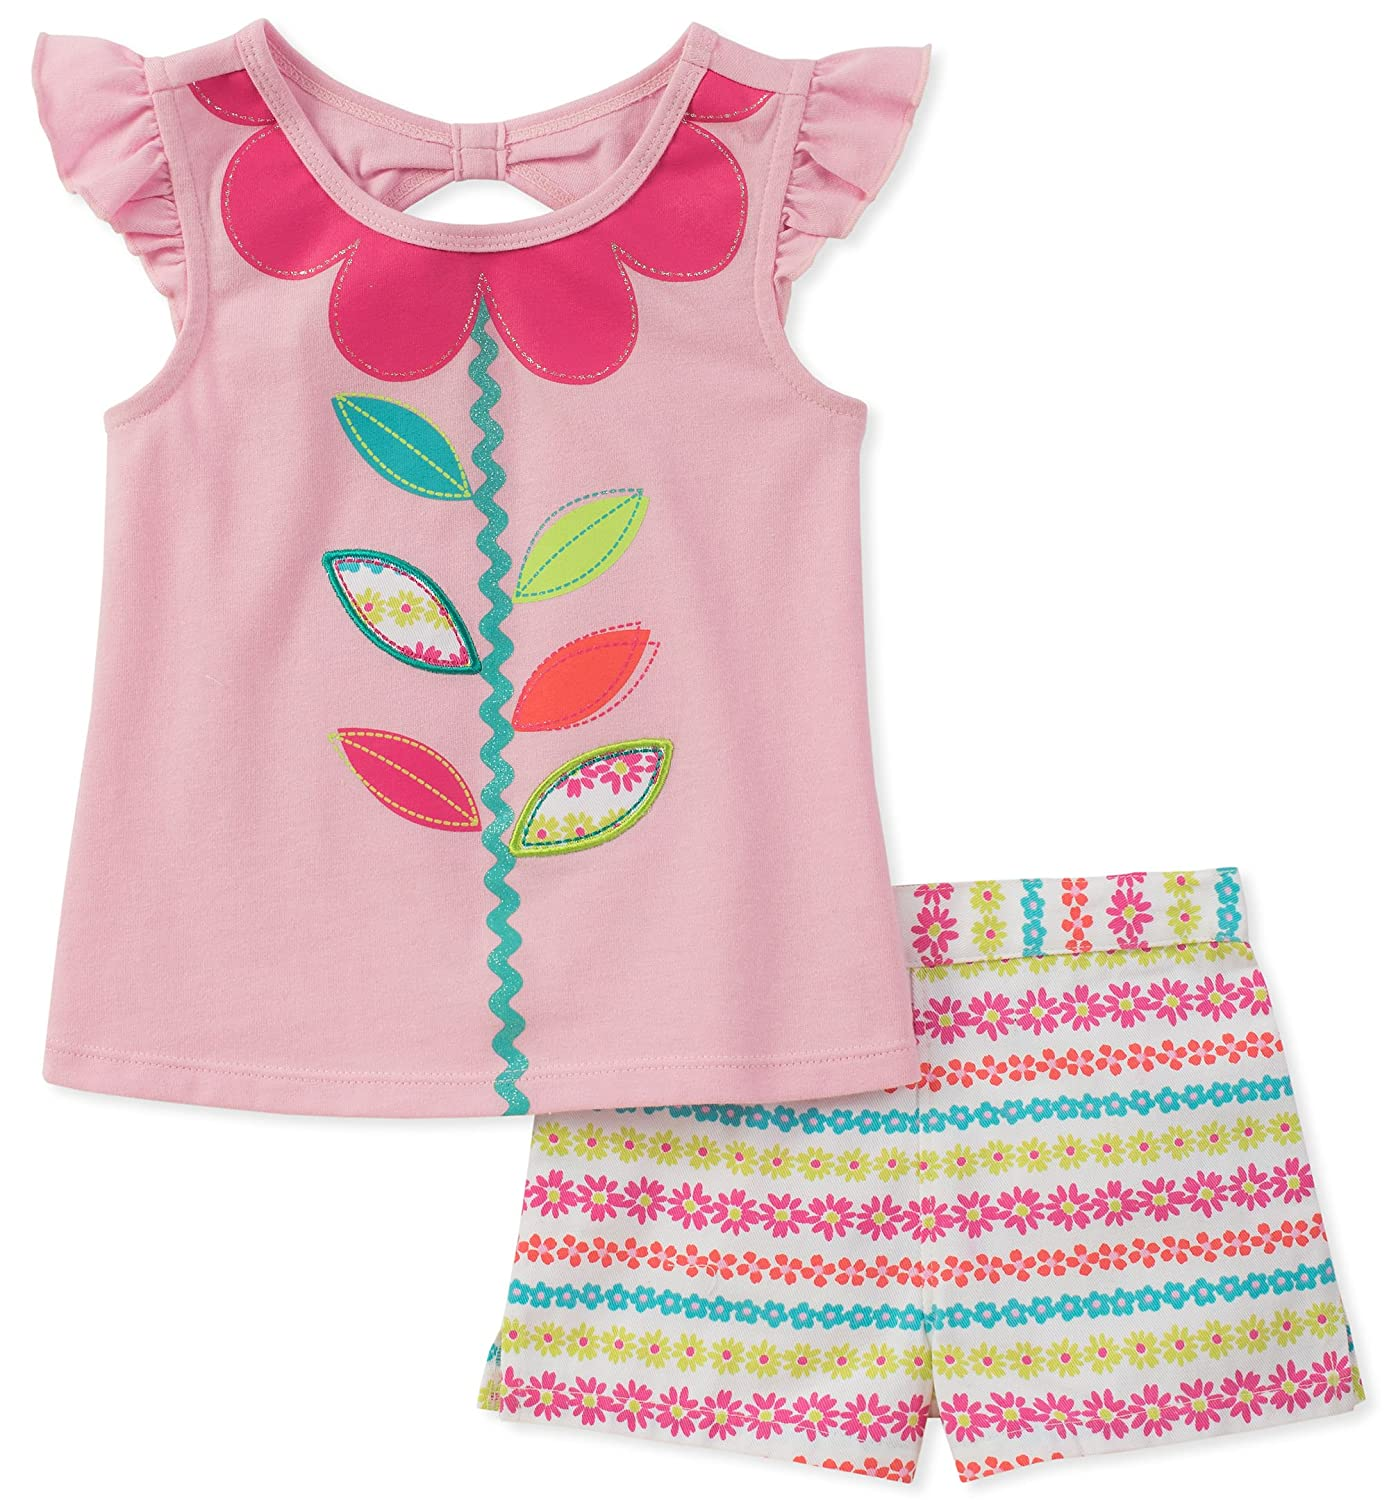 Kids Headquarters Girls' Toddler 2 Pieces Shorts Set 11E12089-99